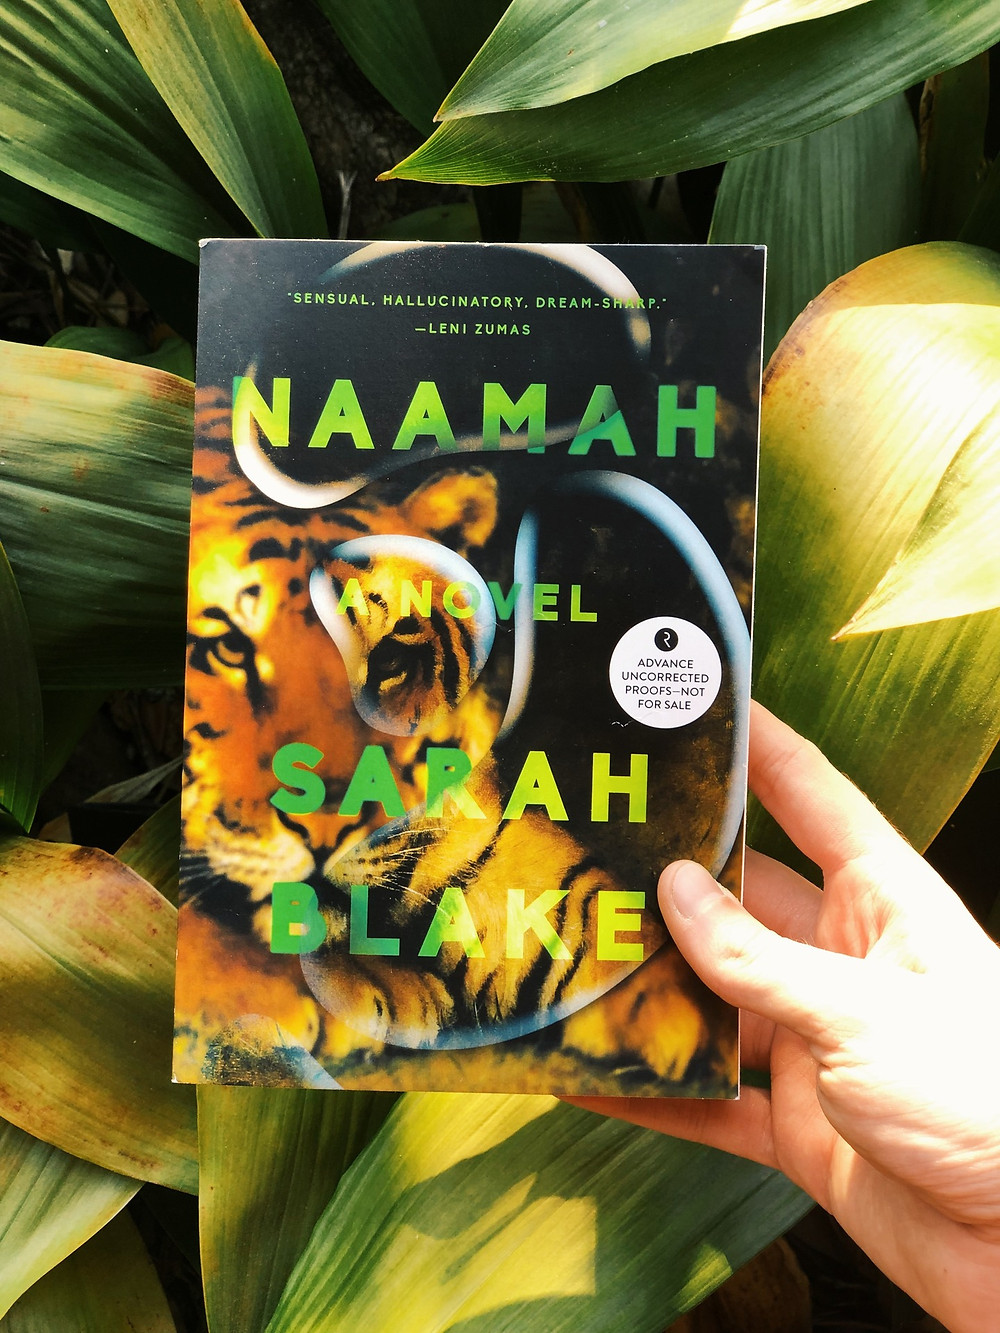 A hand holds up the book Naamah in front of a green-leafed plant